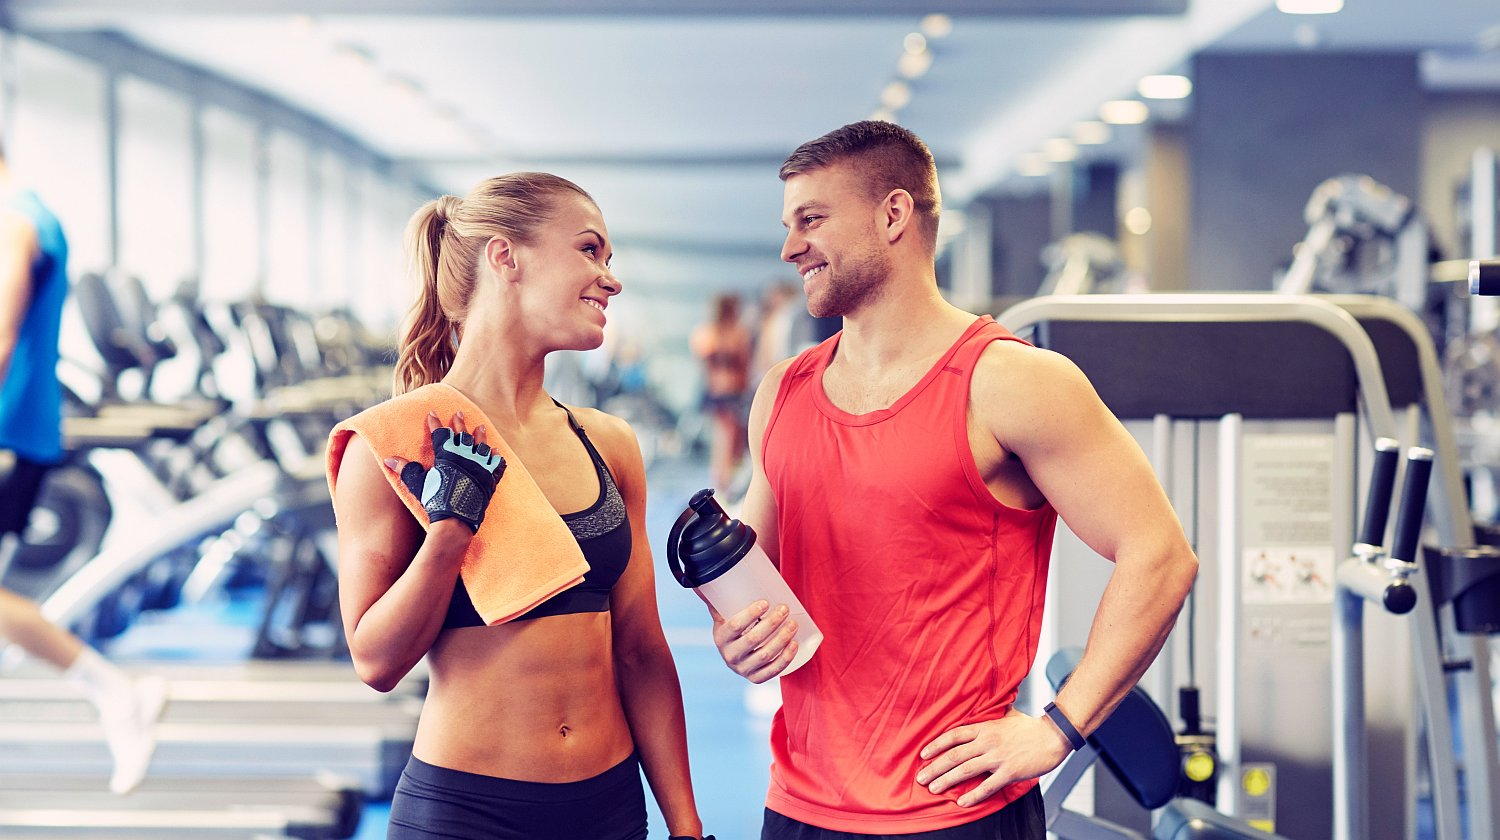 Feature | Smiling couple after work out | The Importance Of Good Hydration When Working Out